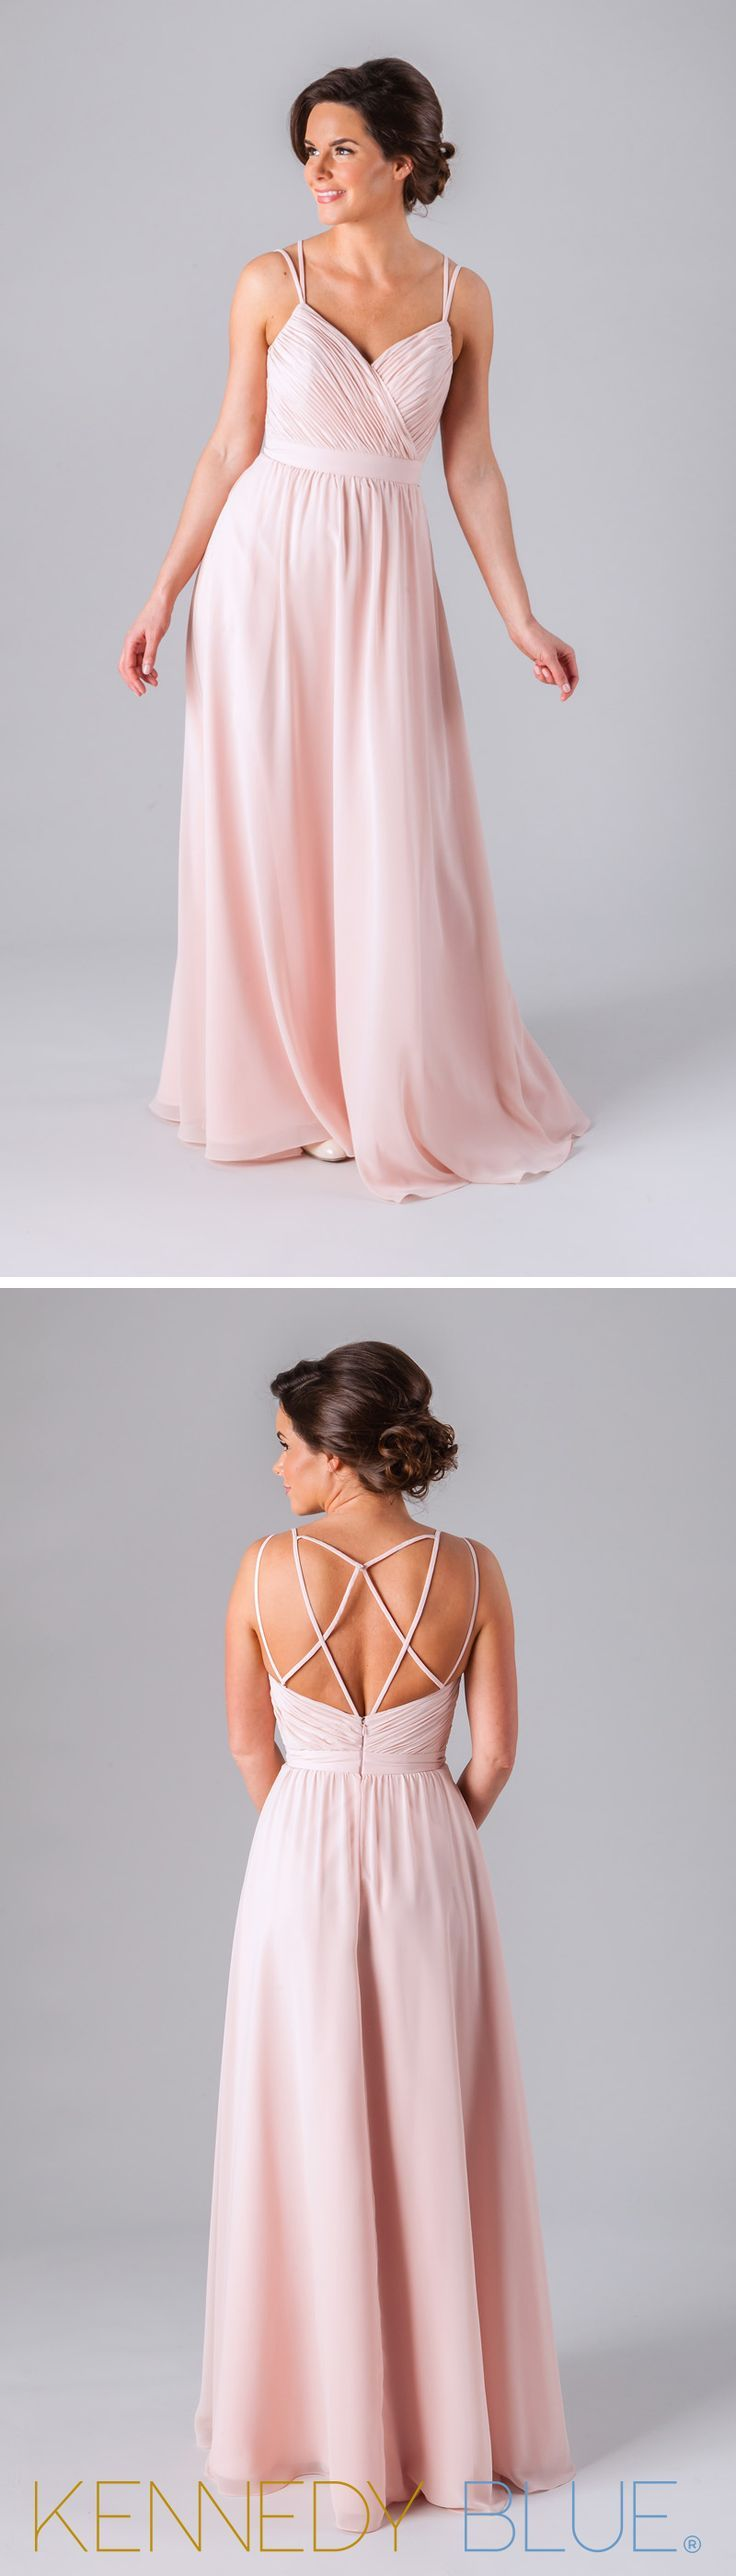 This gorgeous chiffon bridesmaid dress has a v-neckline with spaghetti straps that flow into a fun, unique back that hooks together in the center.